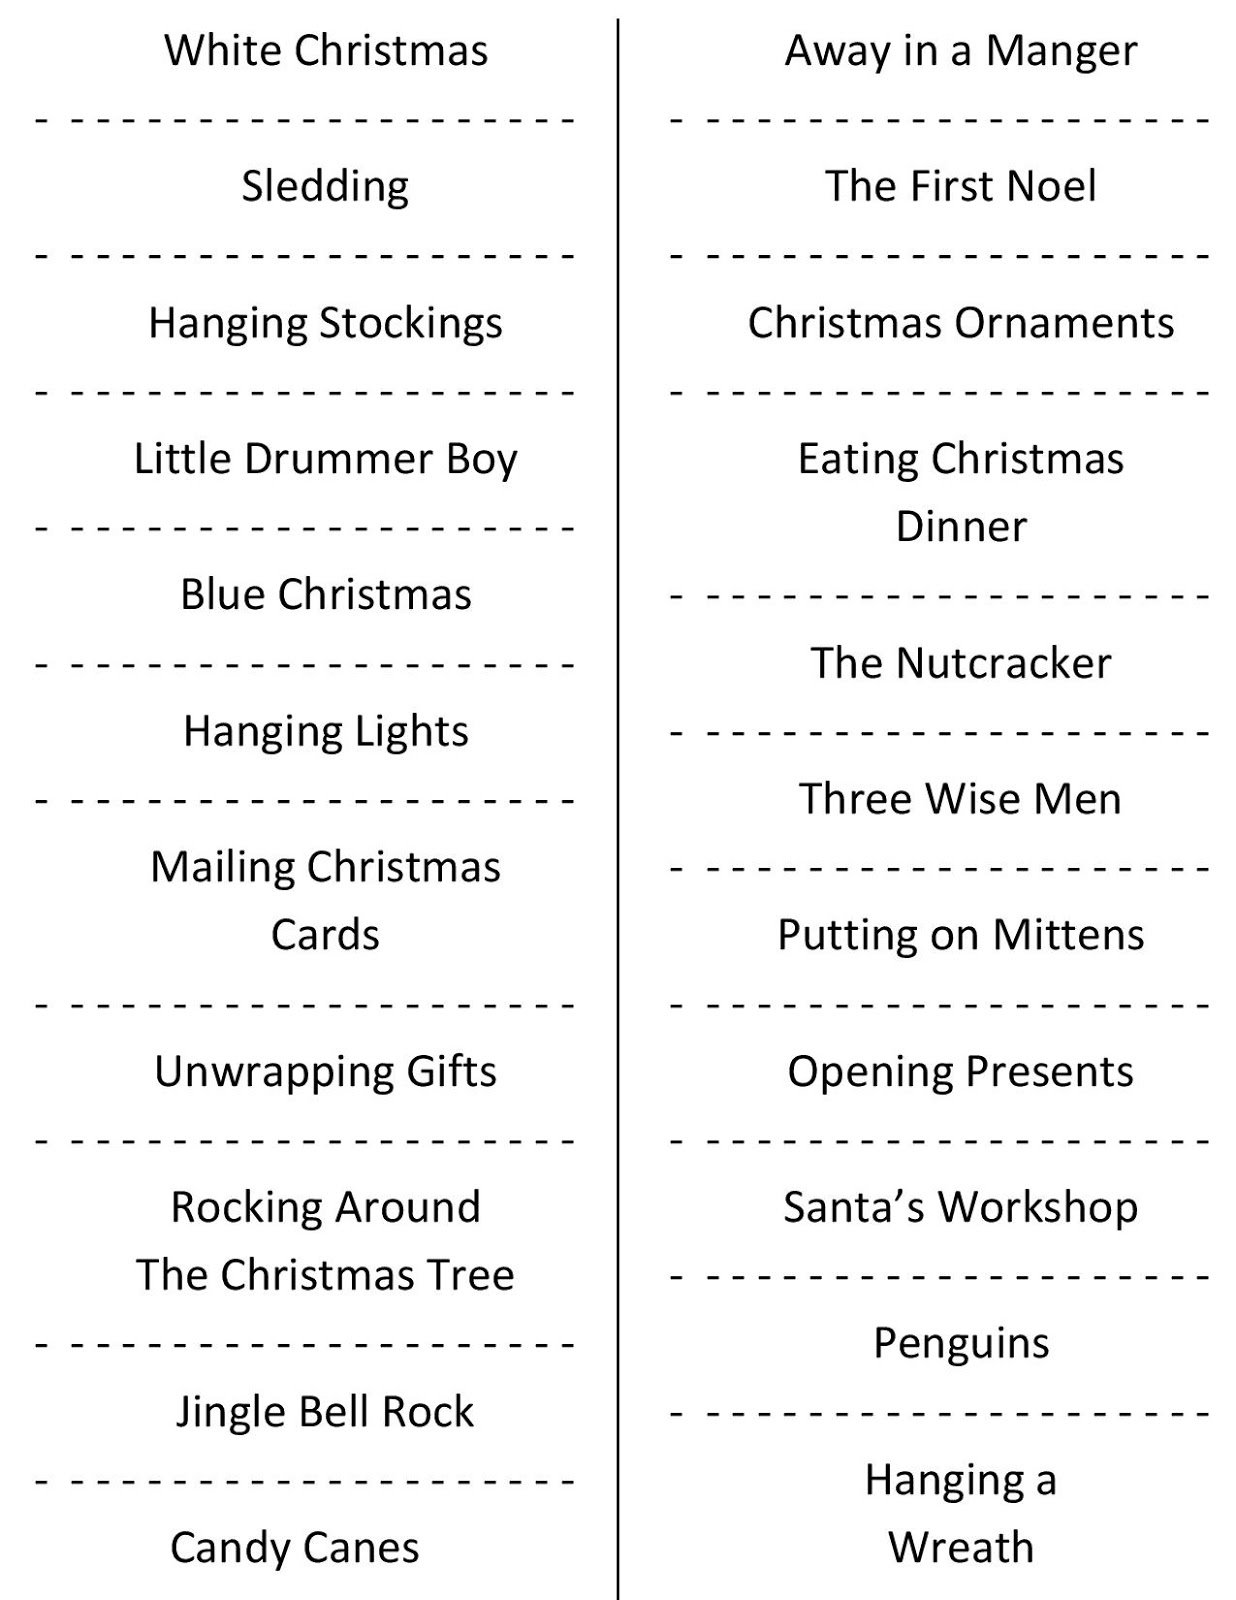 10 Stylish Funny Charades Ideas For Adults christmas charades free printable party game 3